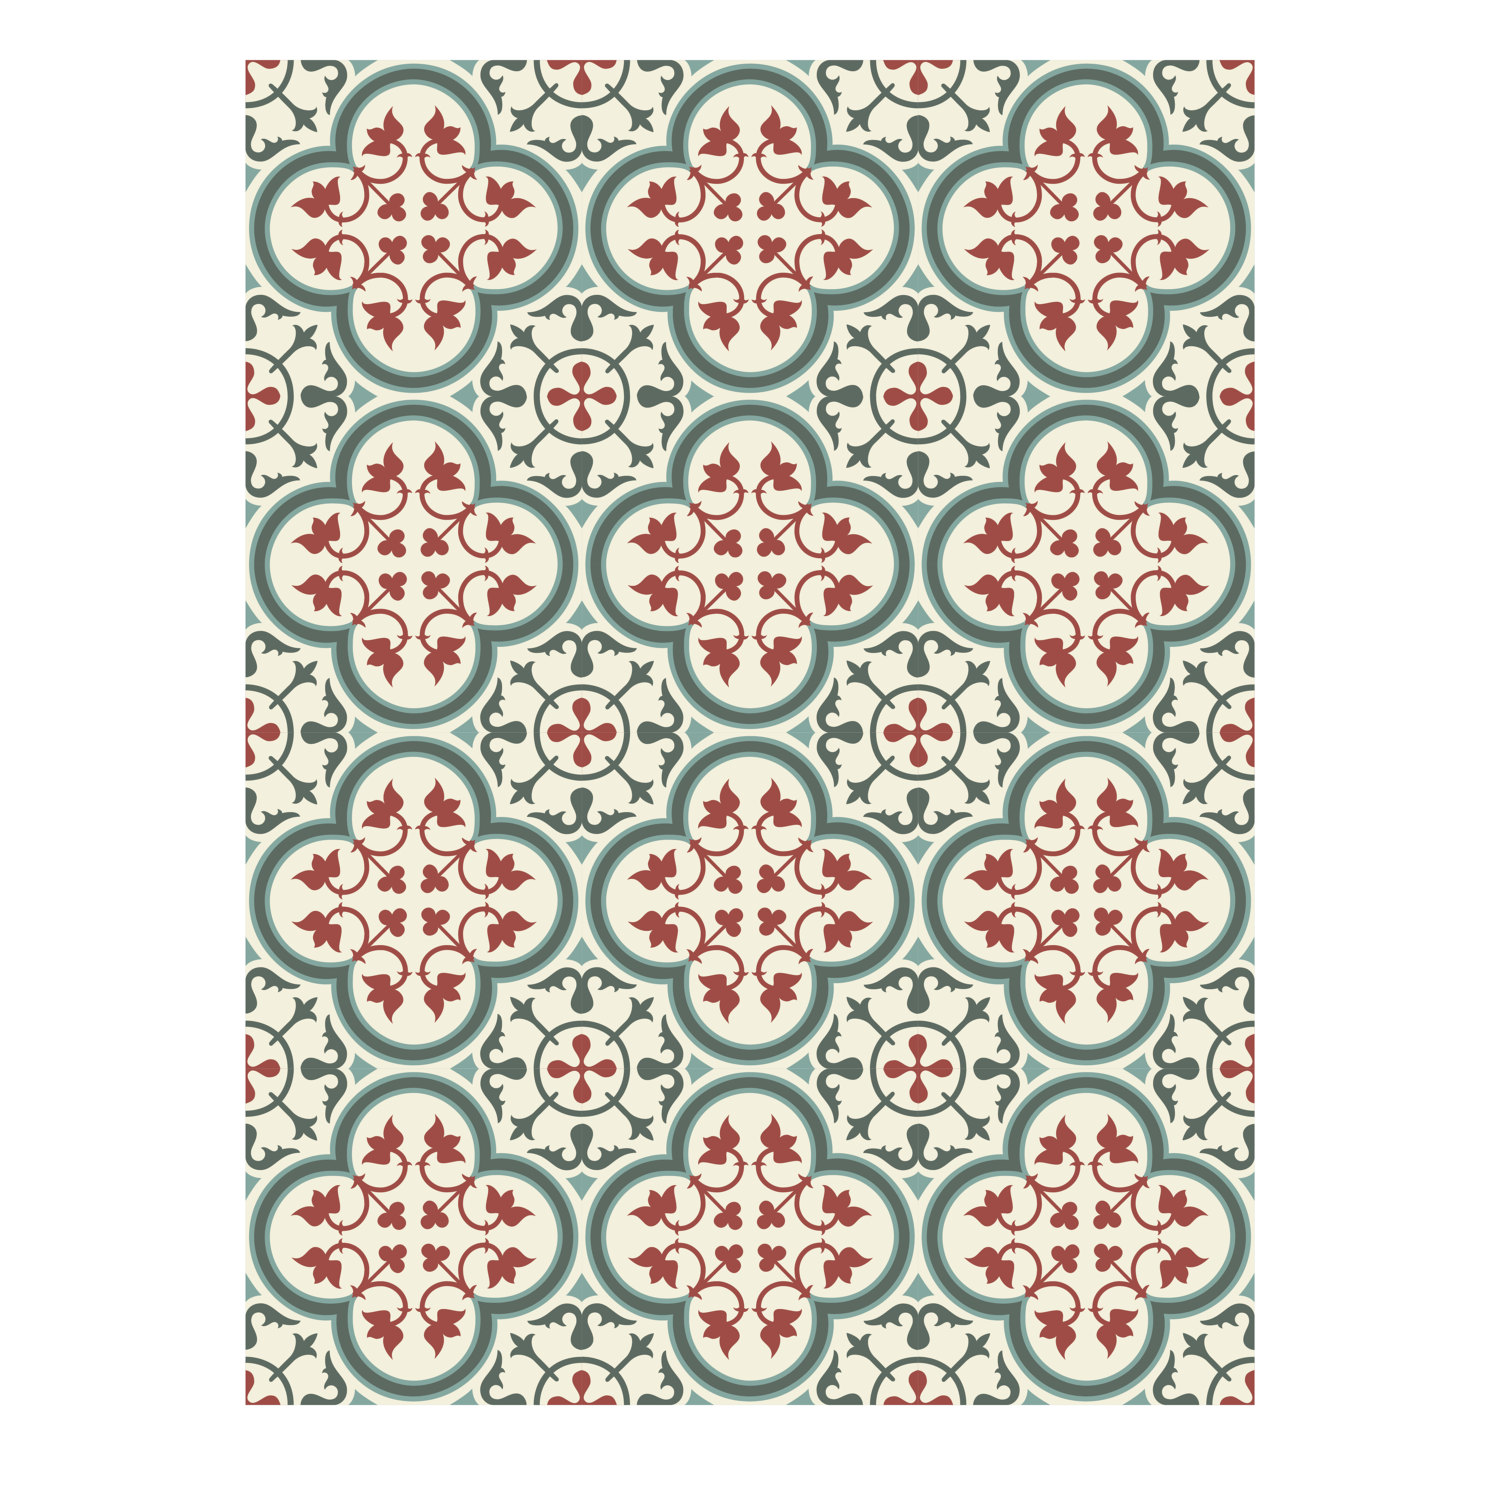 Floor Tile Decalsstickers Vinyl Decals Self